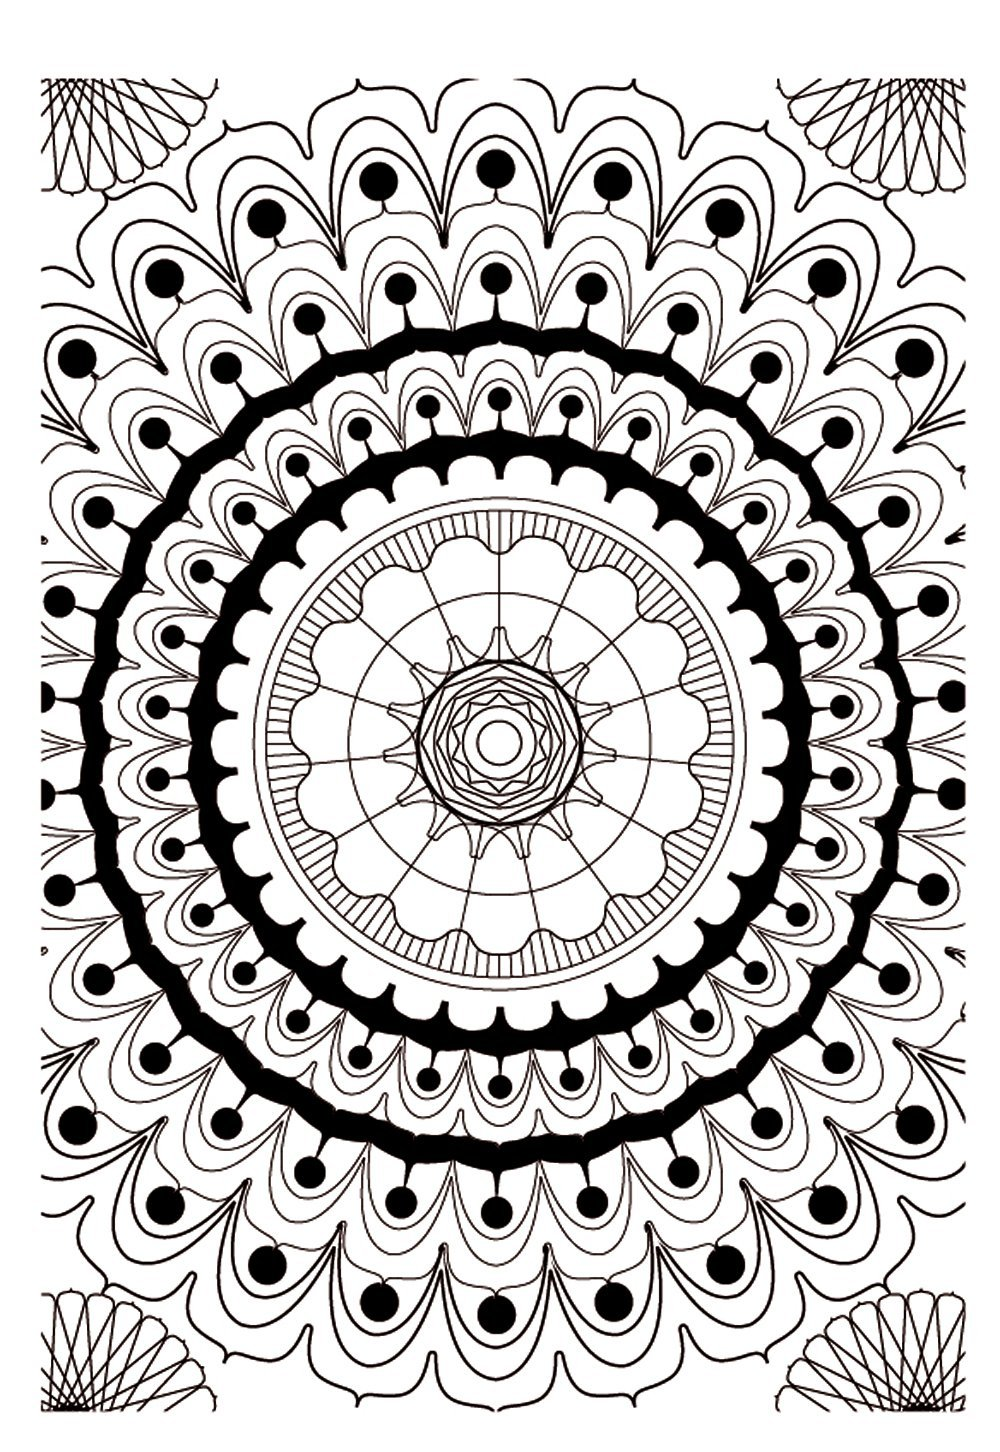 Mandala kleurplaten - Coloriage therapie ...